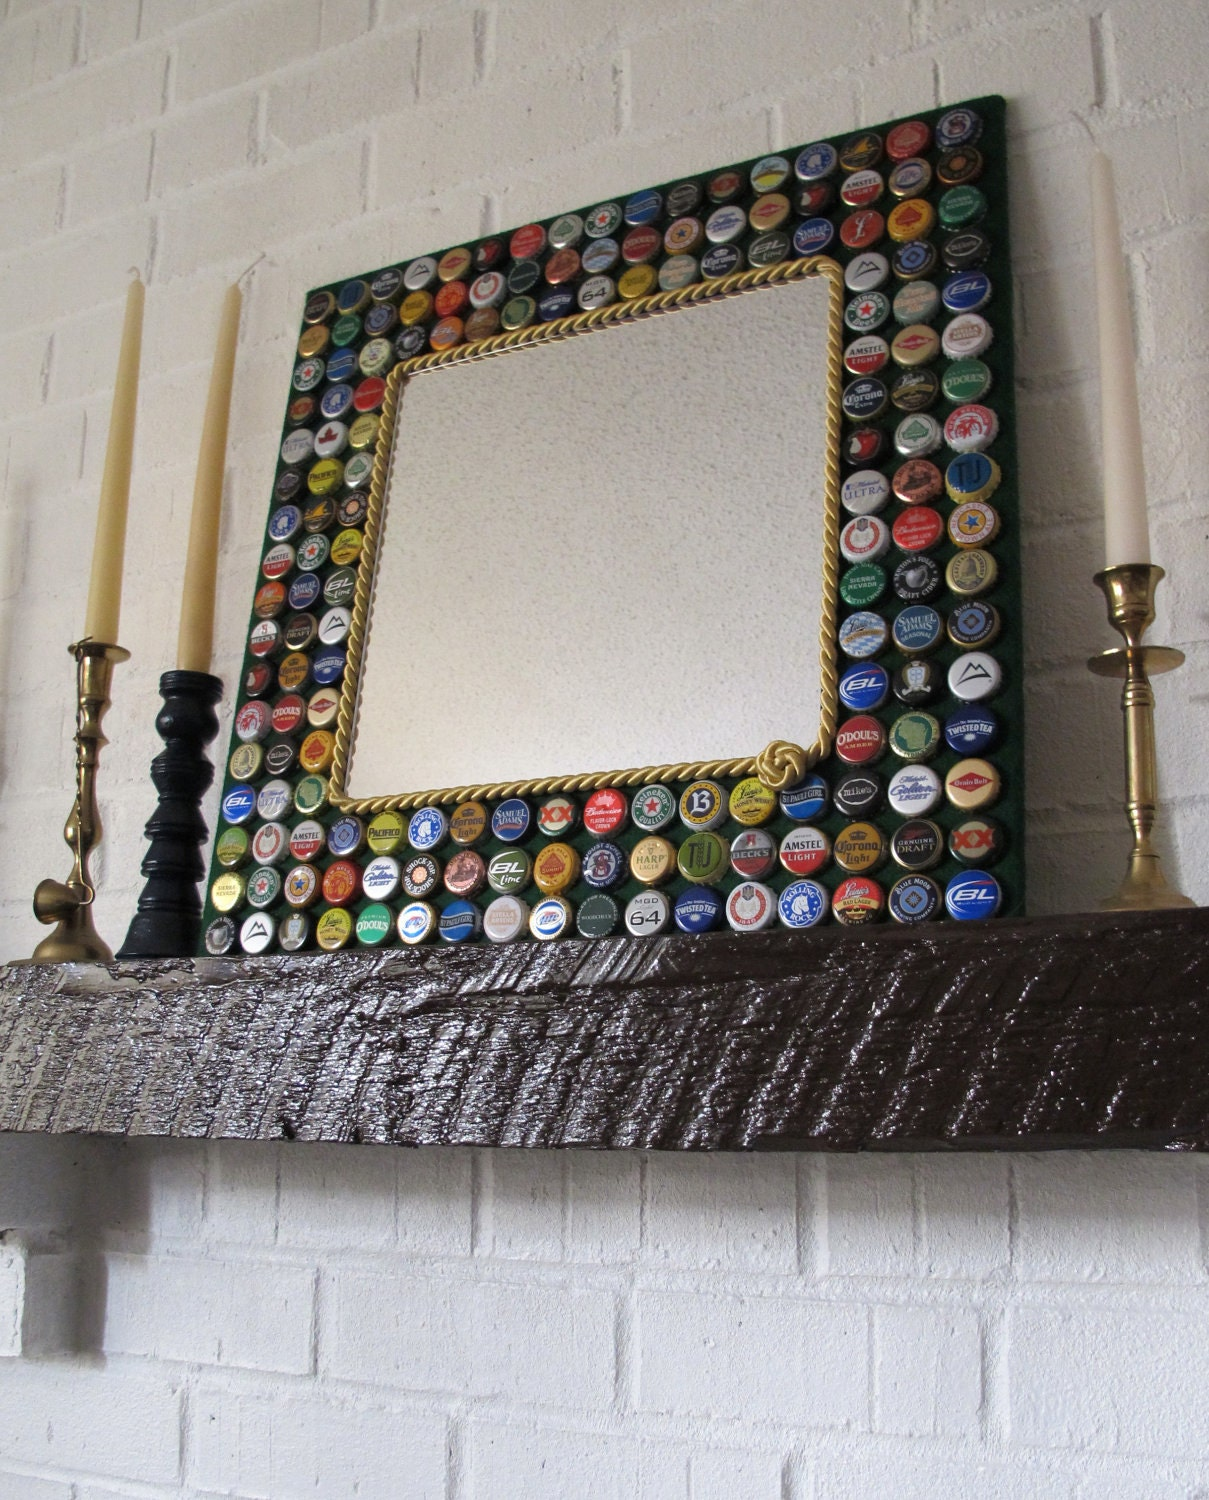 Beer Bottle Cap Mirror-Beer/Bottle Caps/Mirror/Bottle Cap Furniture ...: www.etsy.com/listing/91844166/beer-bottle-cap-mirror-beerbottle